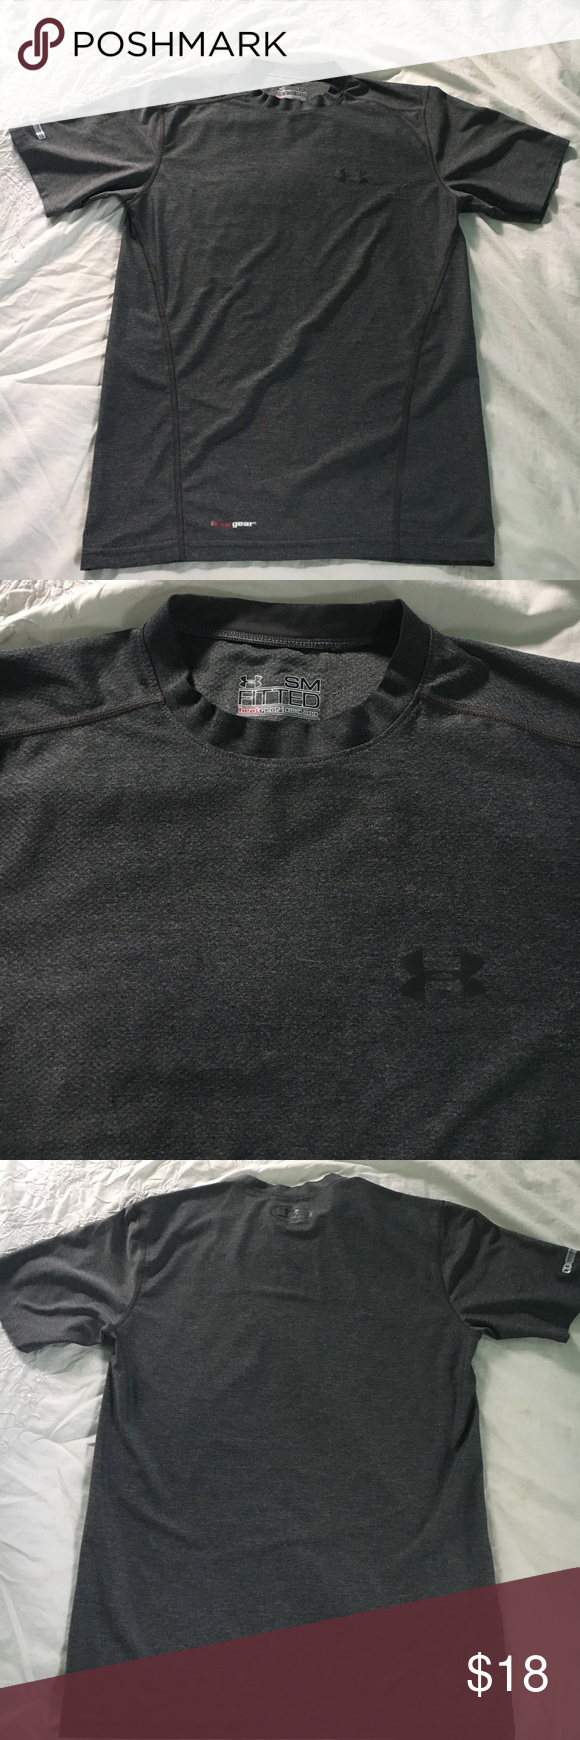 NWOT gray under armour performance shirt Never worn, perfect condition | heat gear | fitted | crew neck Under Armour Shirts Tees - Short Sleeve